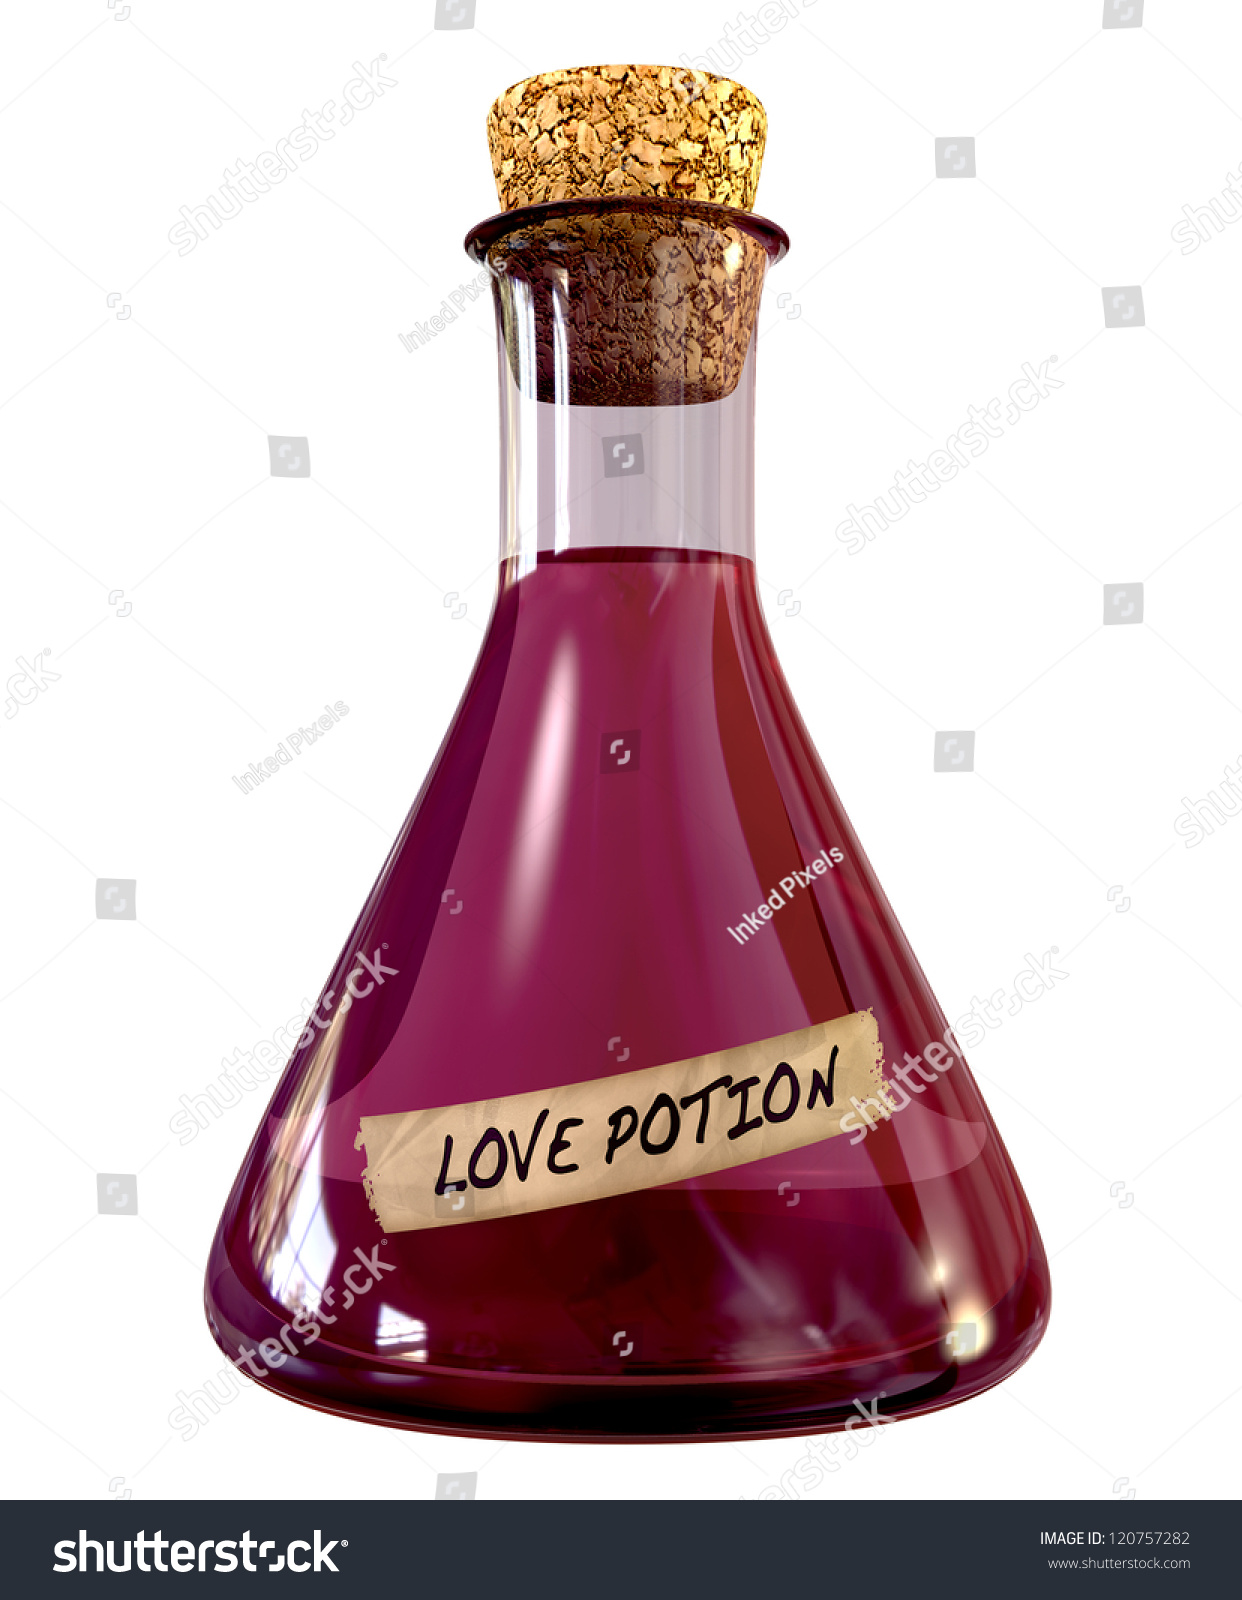 ✮ SPIRIT BRINGERS: THE SIDER STORIES (ANTES LABERINTO DE LA DEMENCIA ☠) - Página 2 Stock-photo-a-regular-chemistry-glass-bottle-filled-with-a-pink-liquid-called-love-potion-and-sealed-with-a-120757282